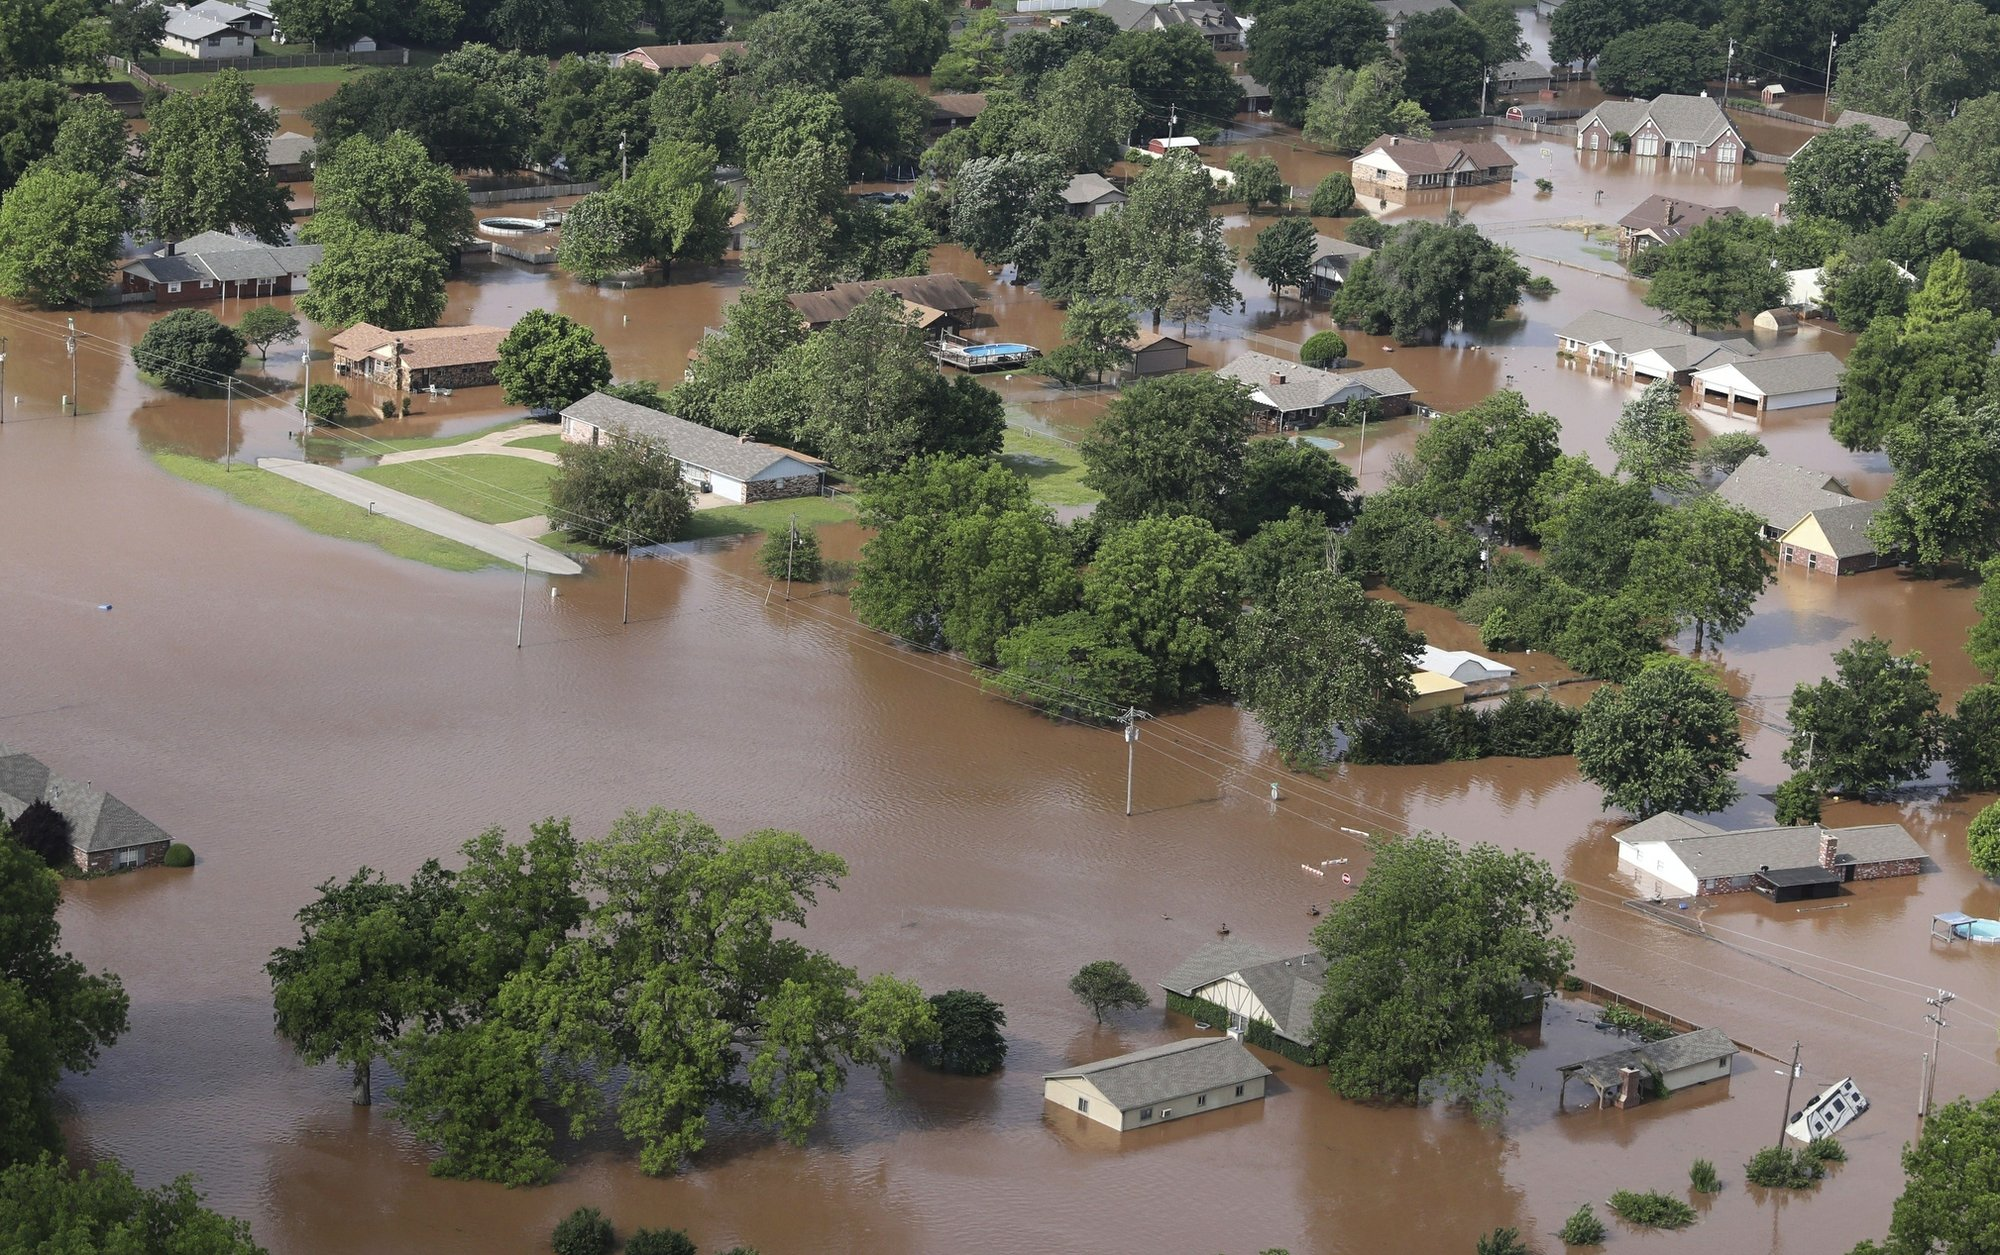 Longest-lasting Mississippi flooding since 1927 affects 8 US states